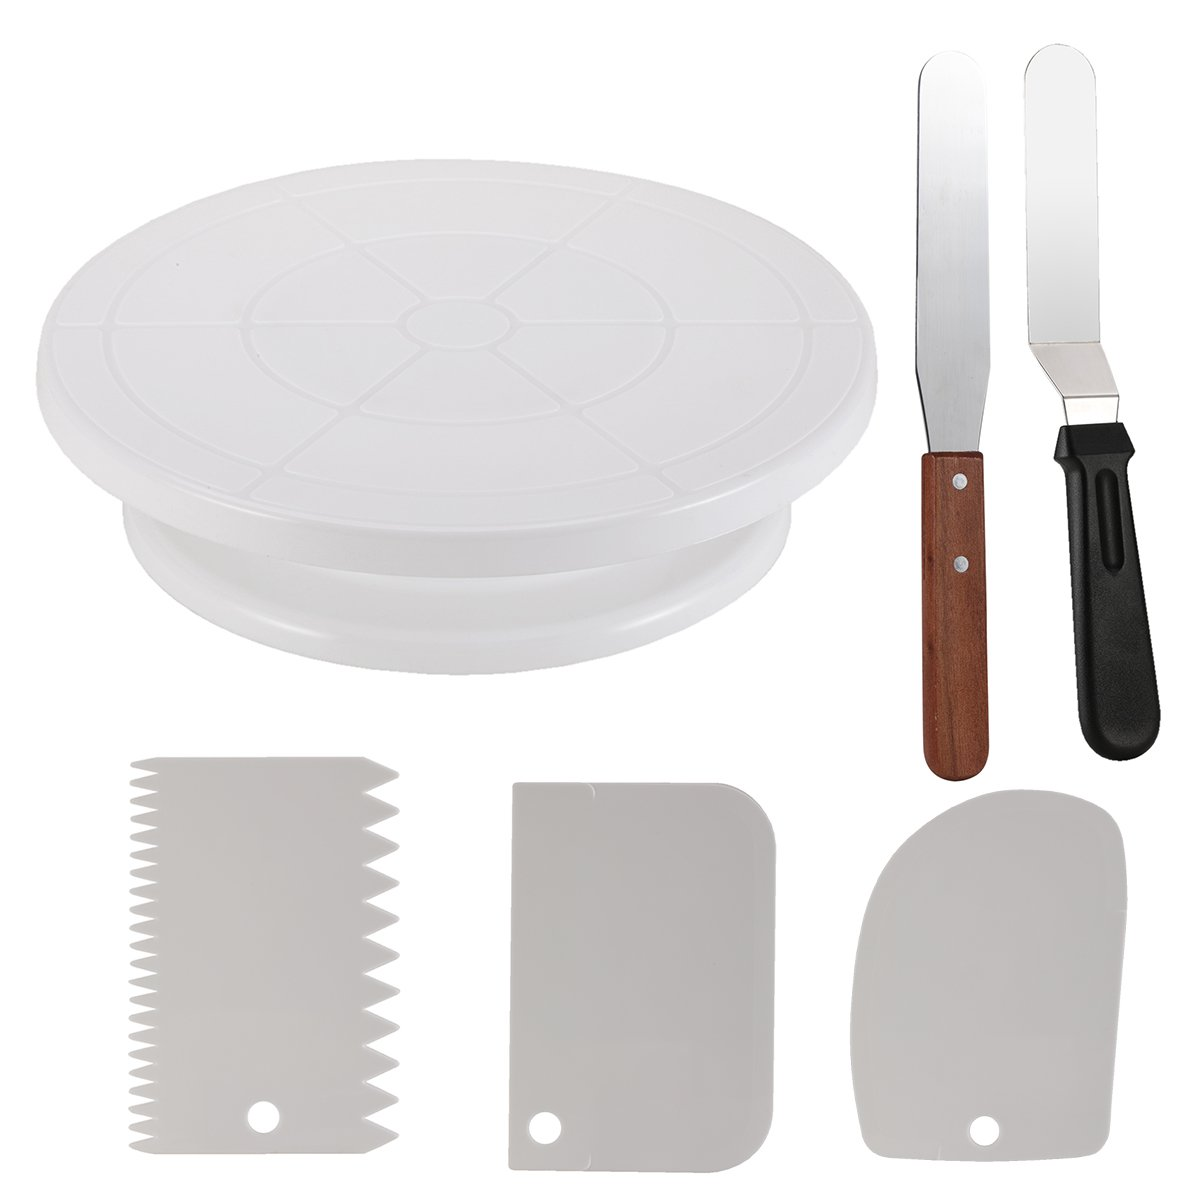 Cake Decorating Turntable,Thsinde Cake Decorating Supplies With Decorating Comb/Icing Smoother(3pcs),2 Icing Spatula With Sided & Angled